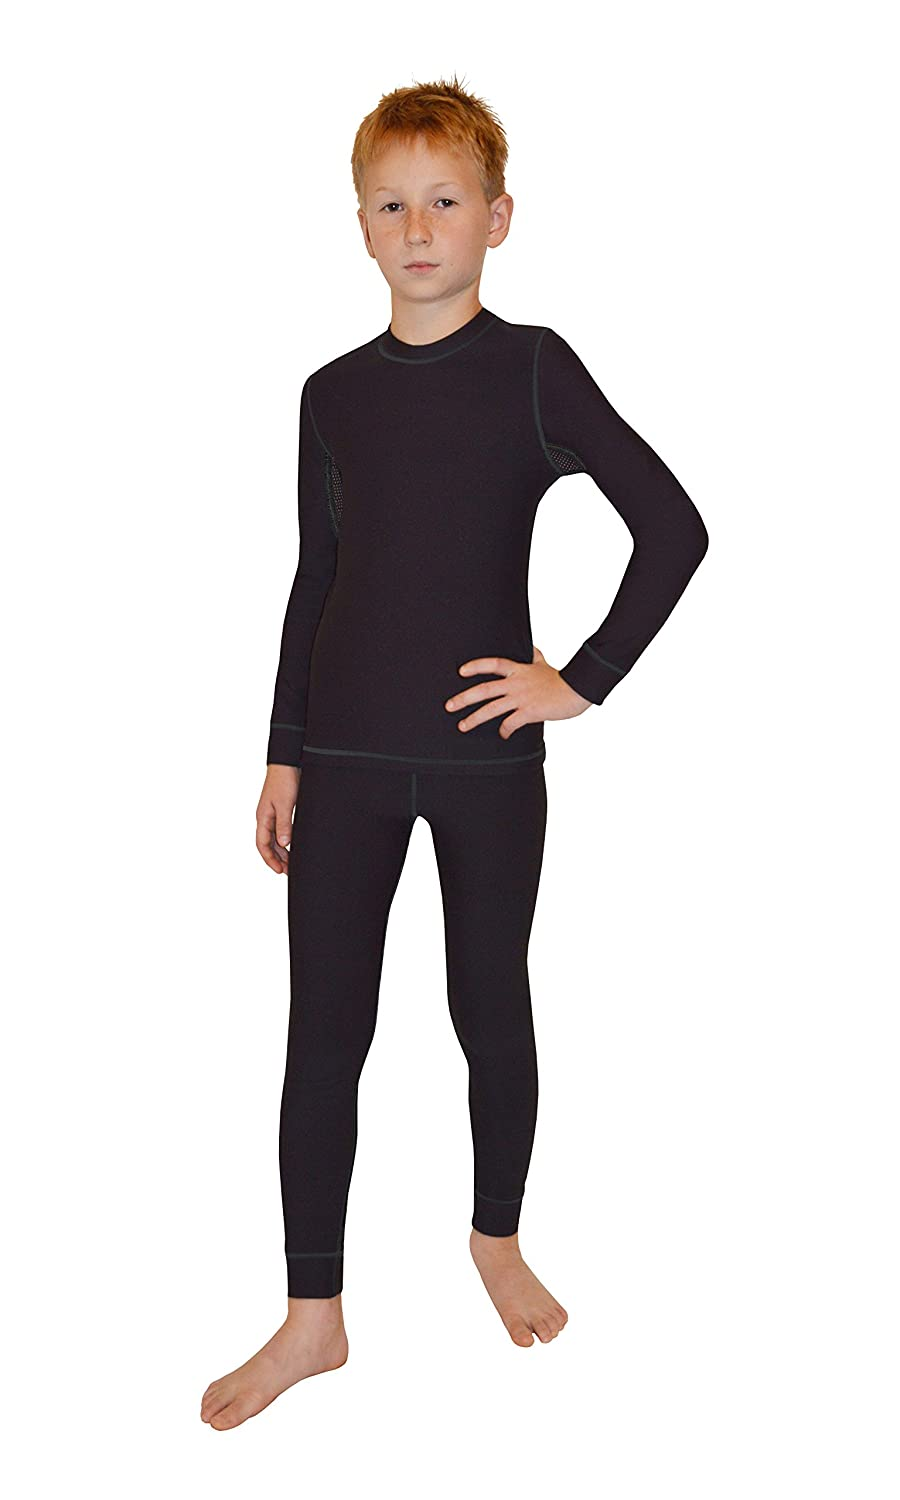 gWINNER children Thermal-technical Underwear Skiunderwear - Set - Warmline-Silverplus